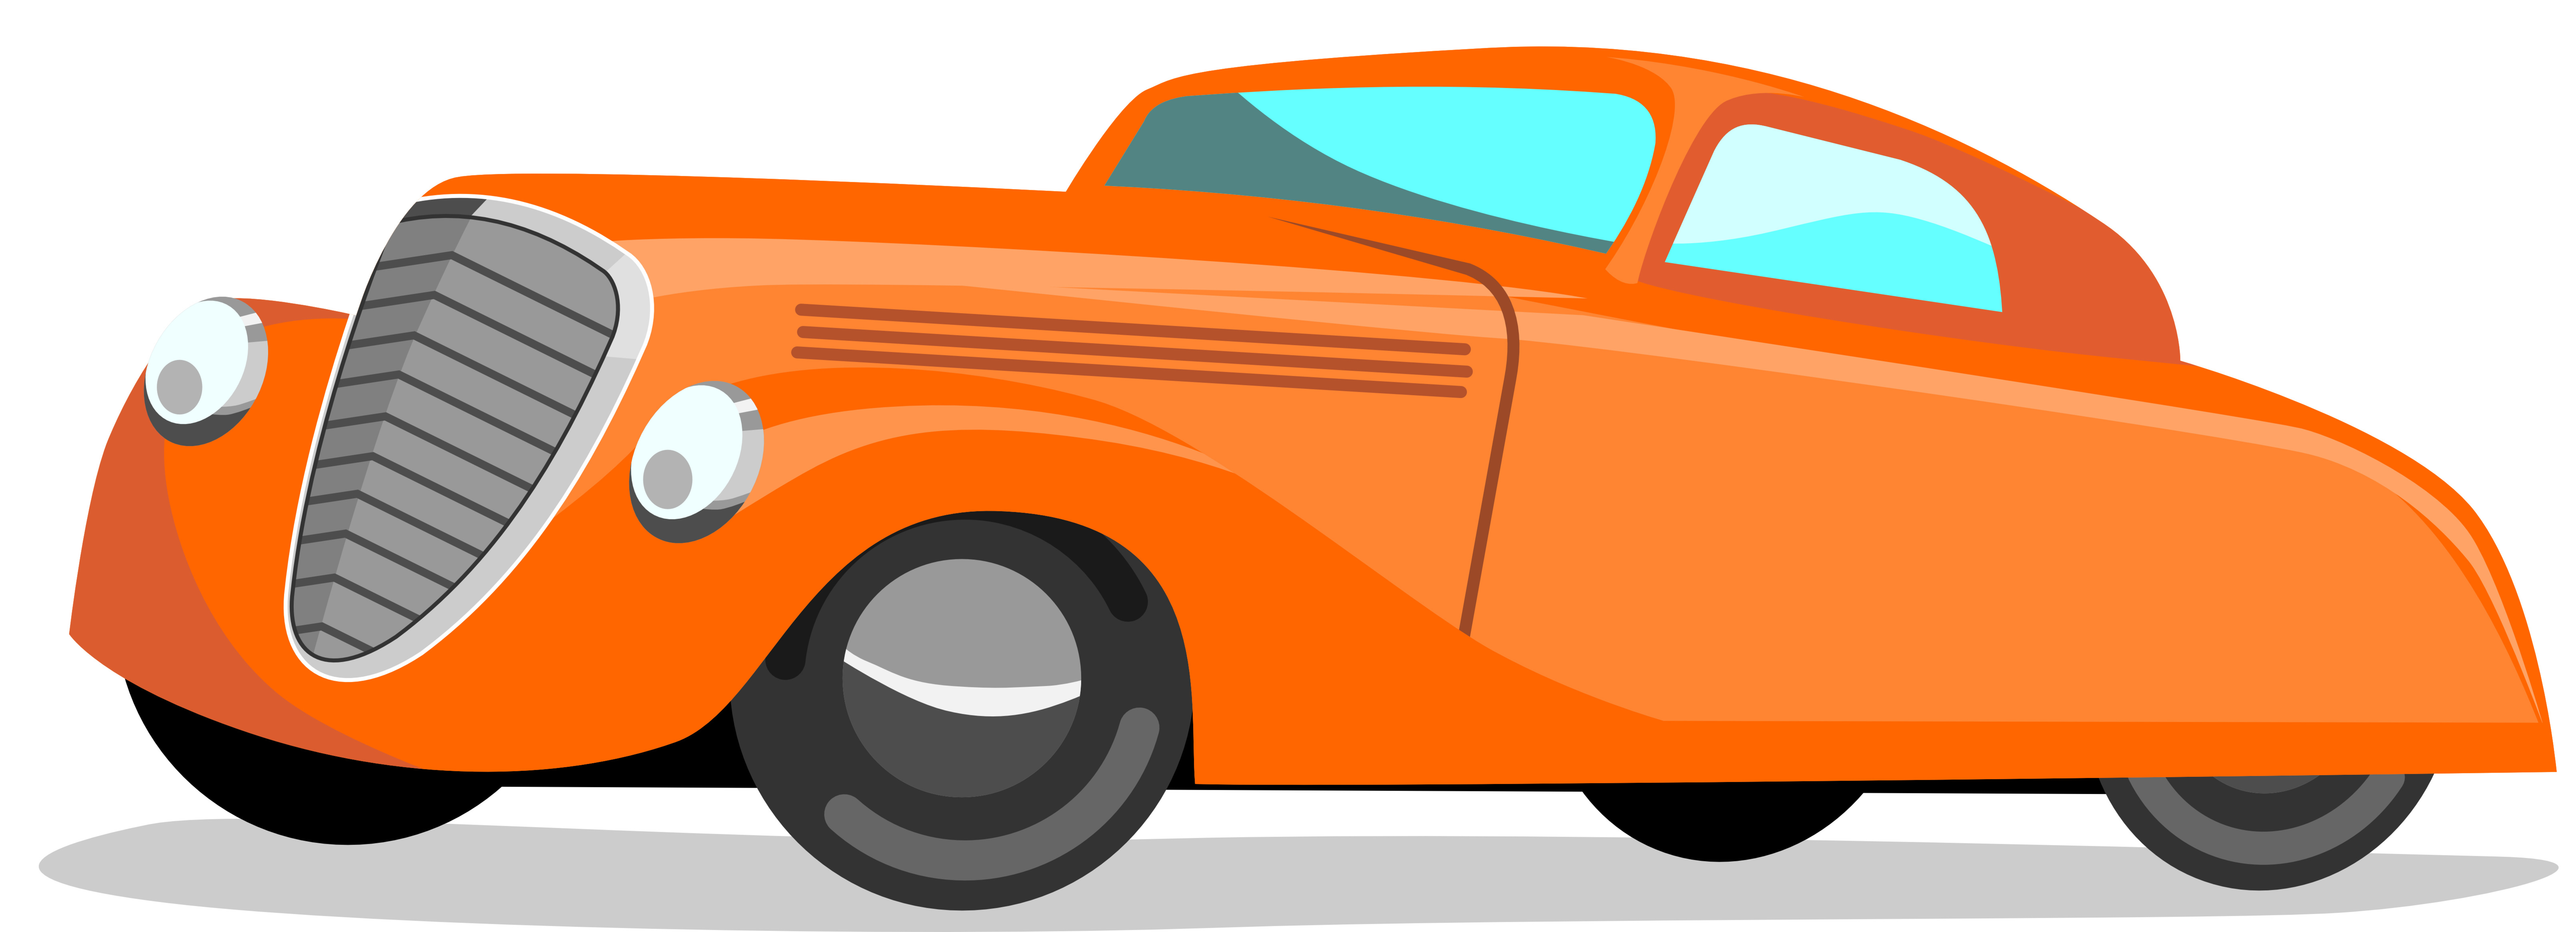 muscle car clipart at getdrawings com free for personal use muscle rh getdrawings com classic car clipart black and white old fashioned car clipart